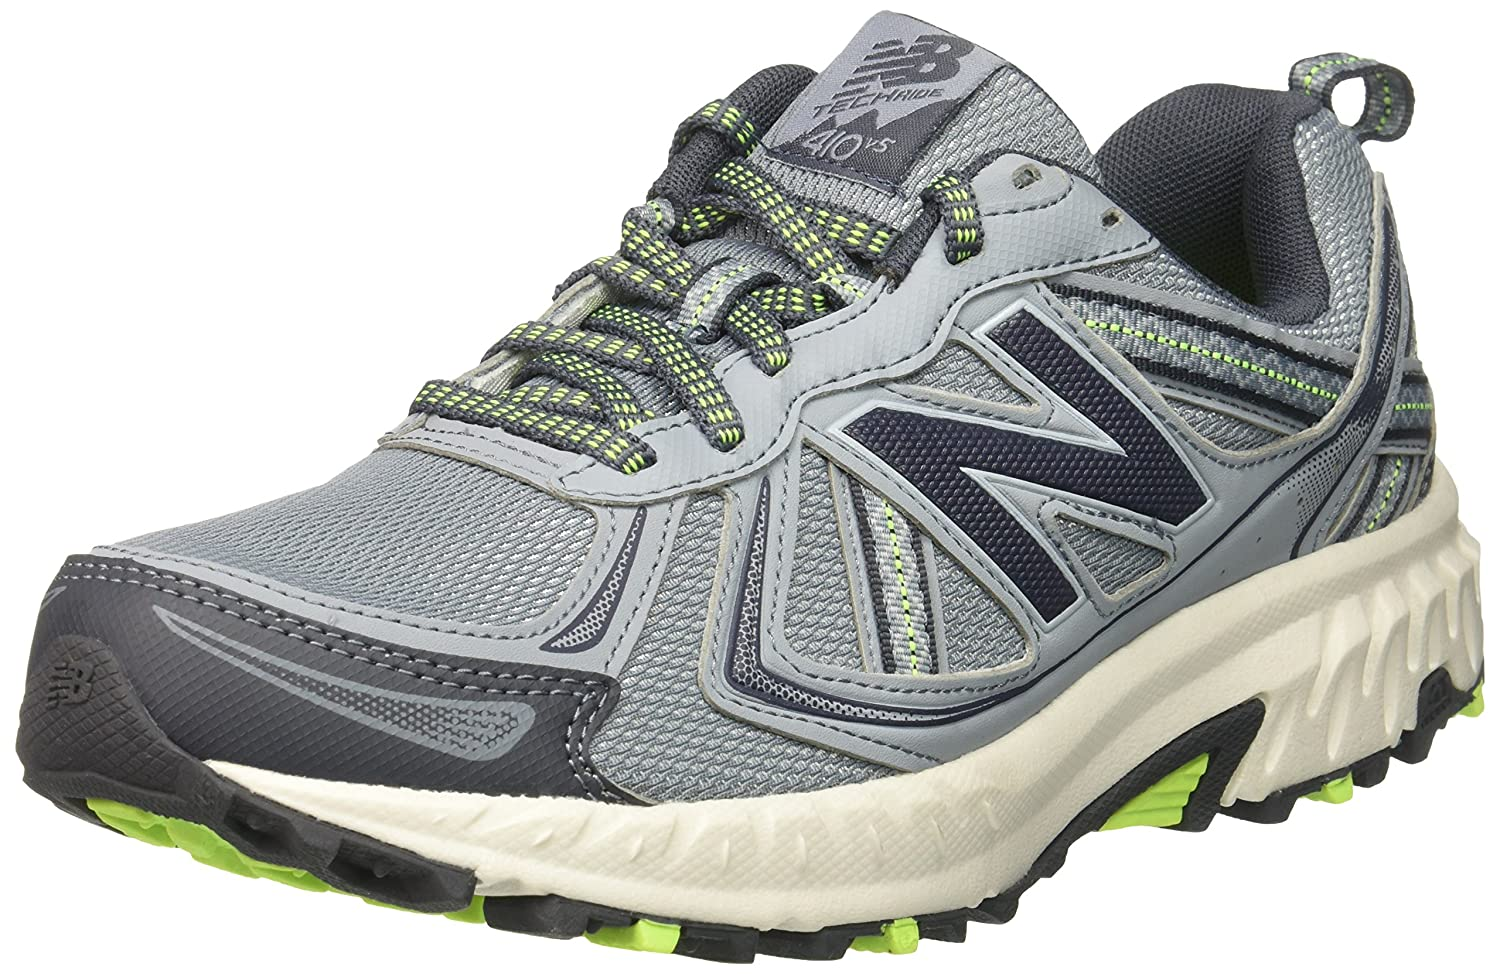 New Balance Women's WT410v5 Cushioning Trail Running Shoe B01LZY1RF4 6.5 D US|Light Grey